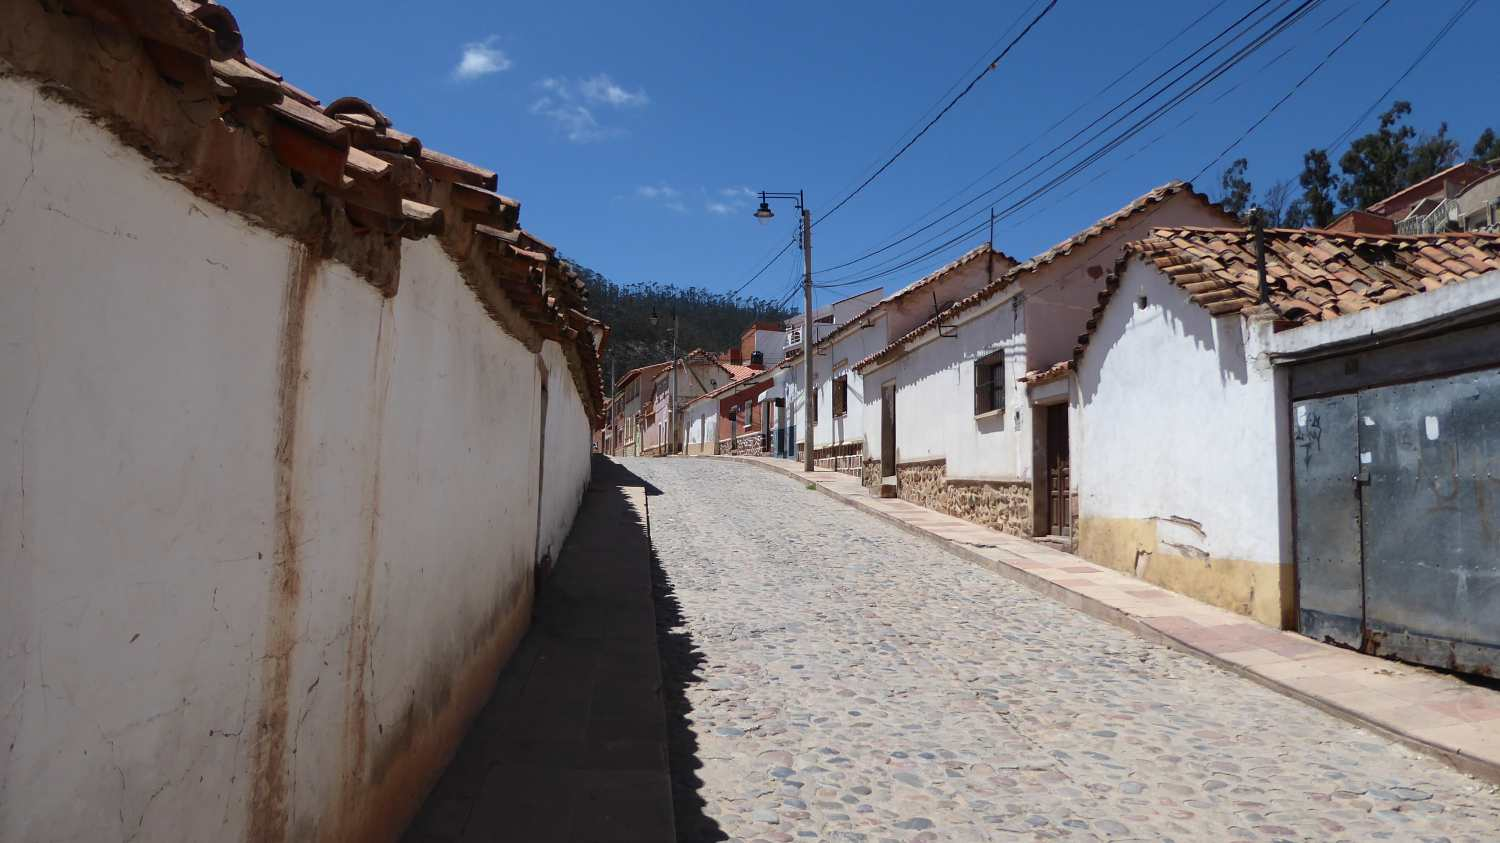 Streets and Alleys